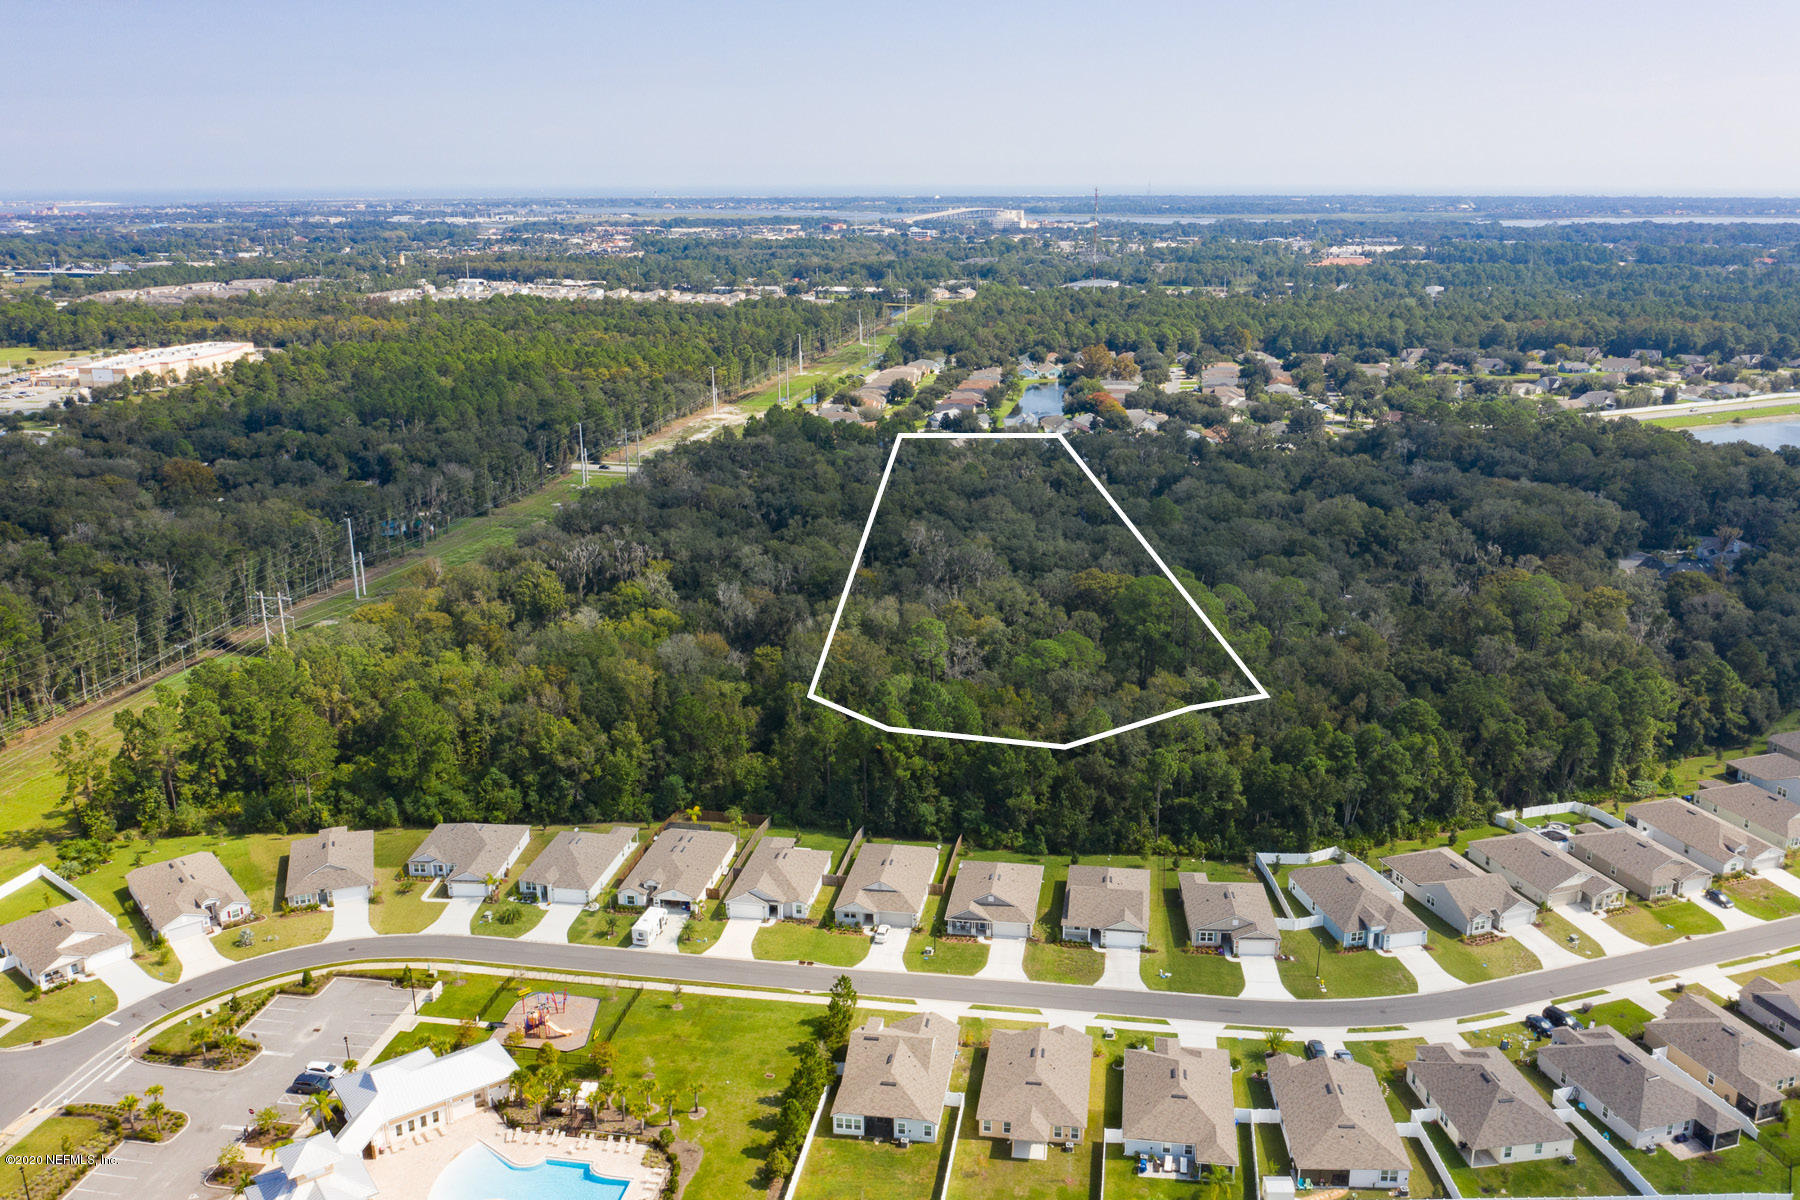 0 ROLLING HILLS, ST AUGUSTINE, FLORIDA 32086, ,Vacant land,For sale,ROLLING HILLS,1080156